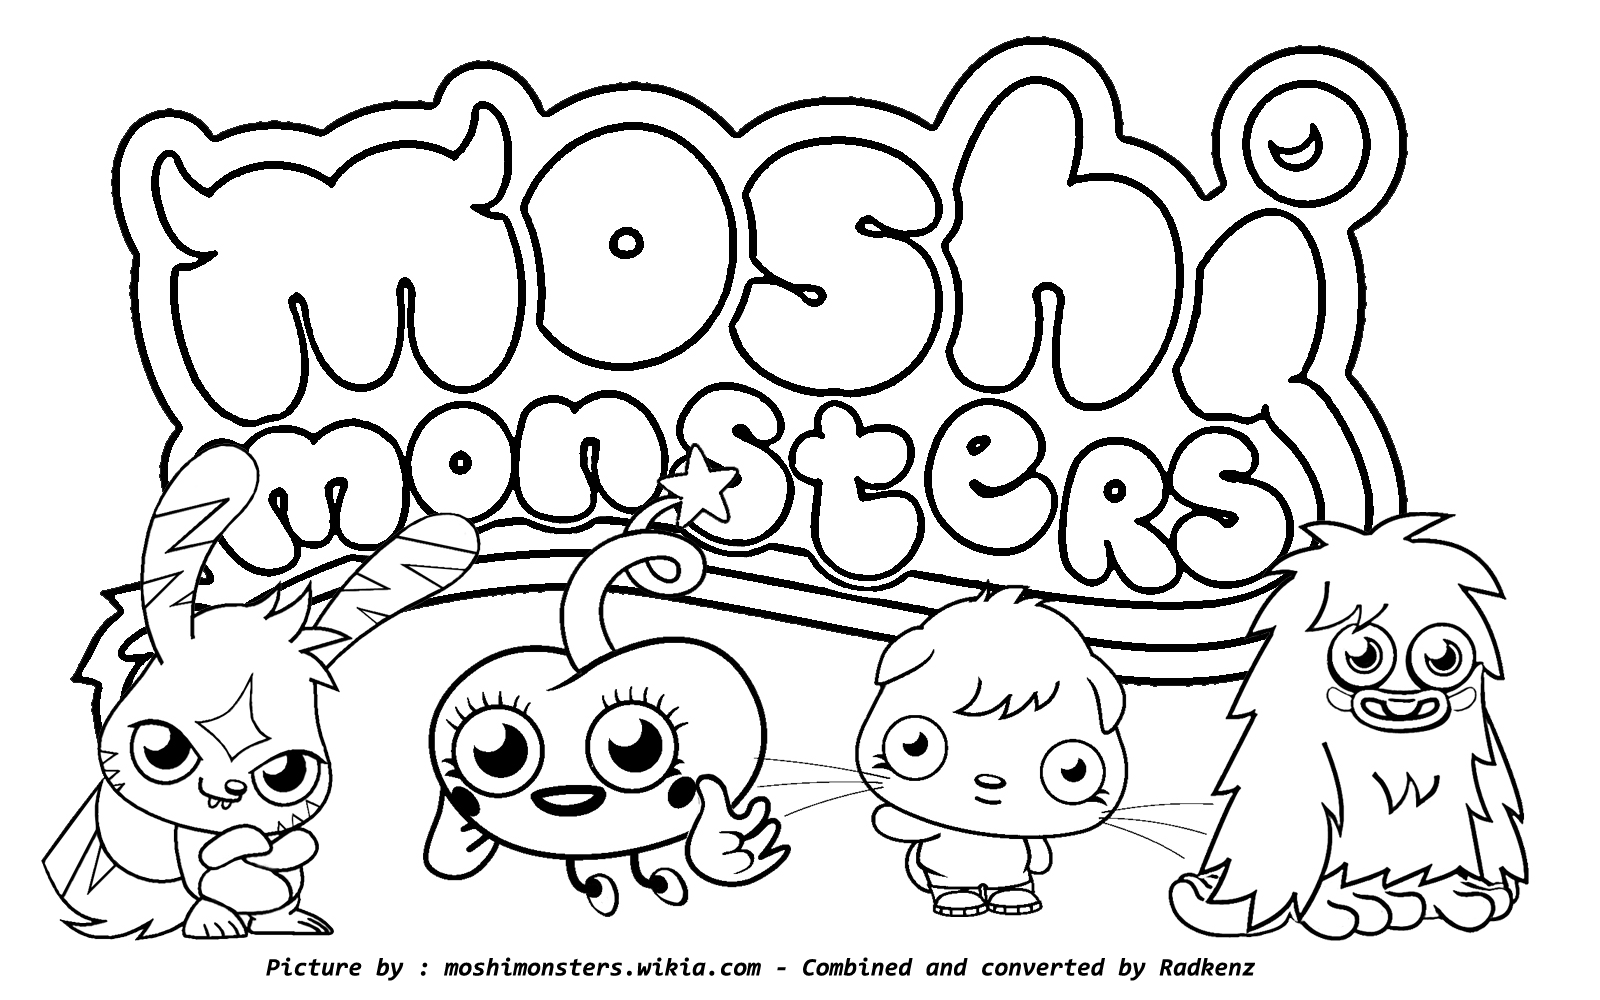 moshi monster coloring pages top 25 free printable moshi monsters coloring pages online monster coloring pages moshi